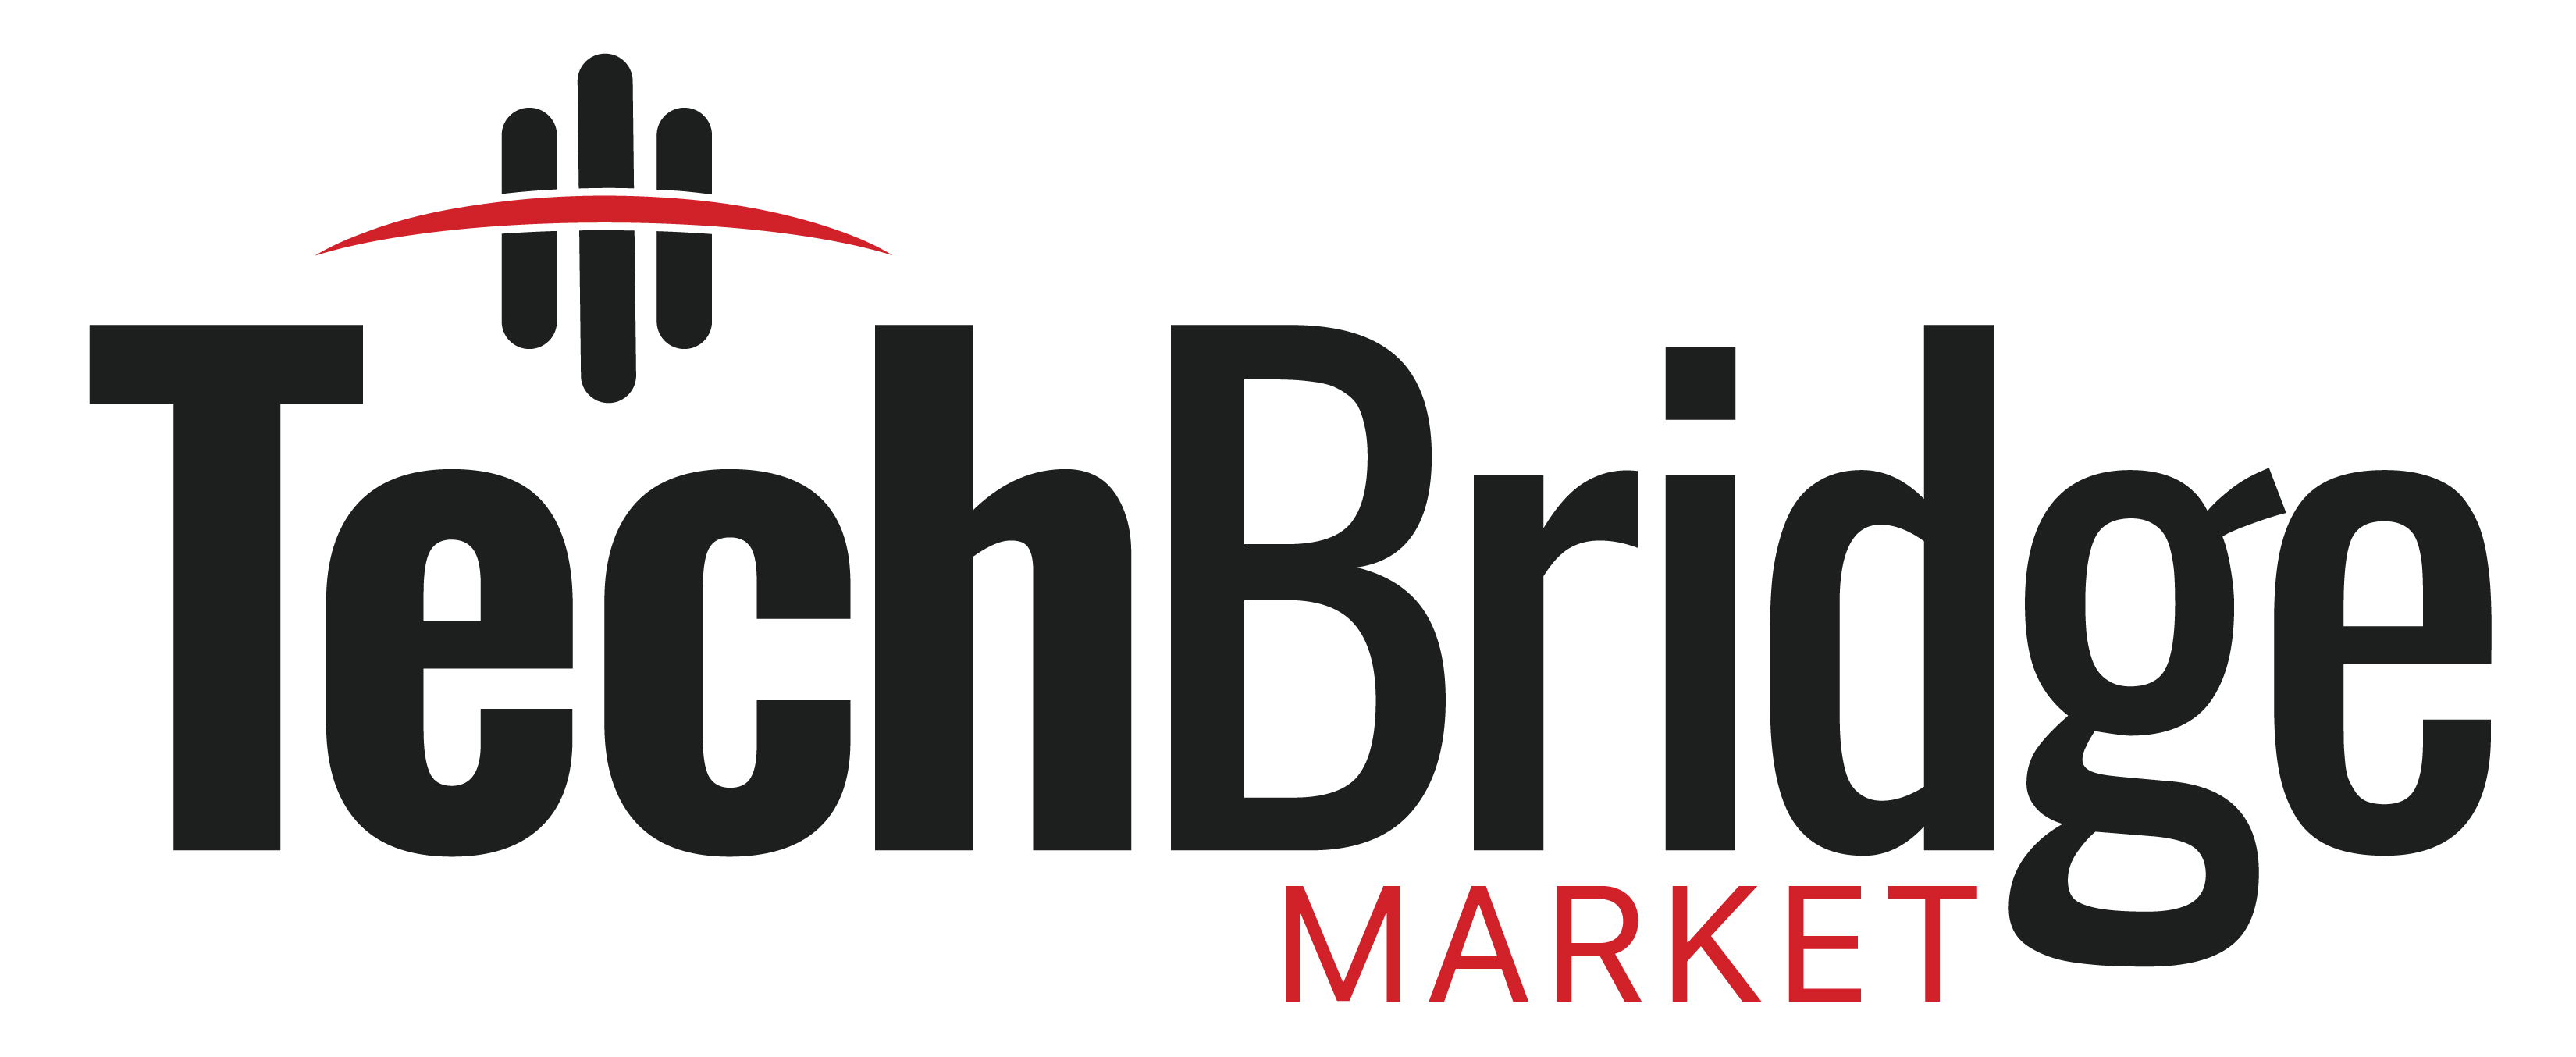 TechBridge Market